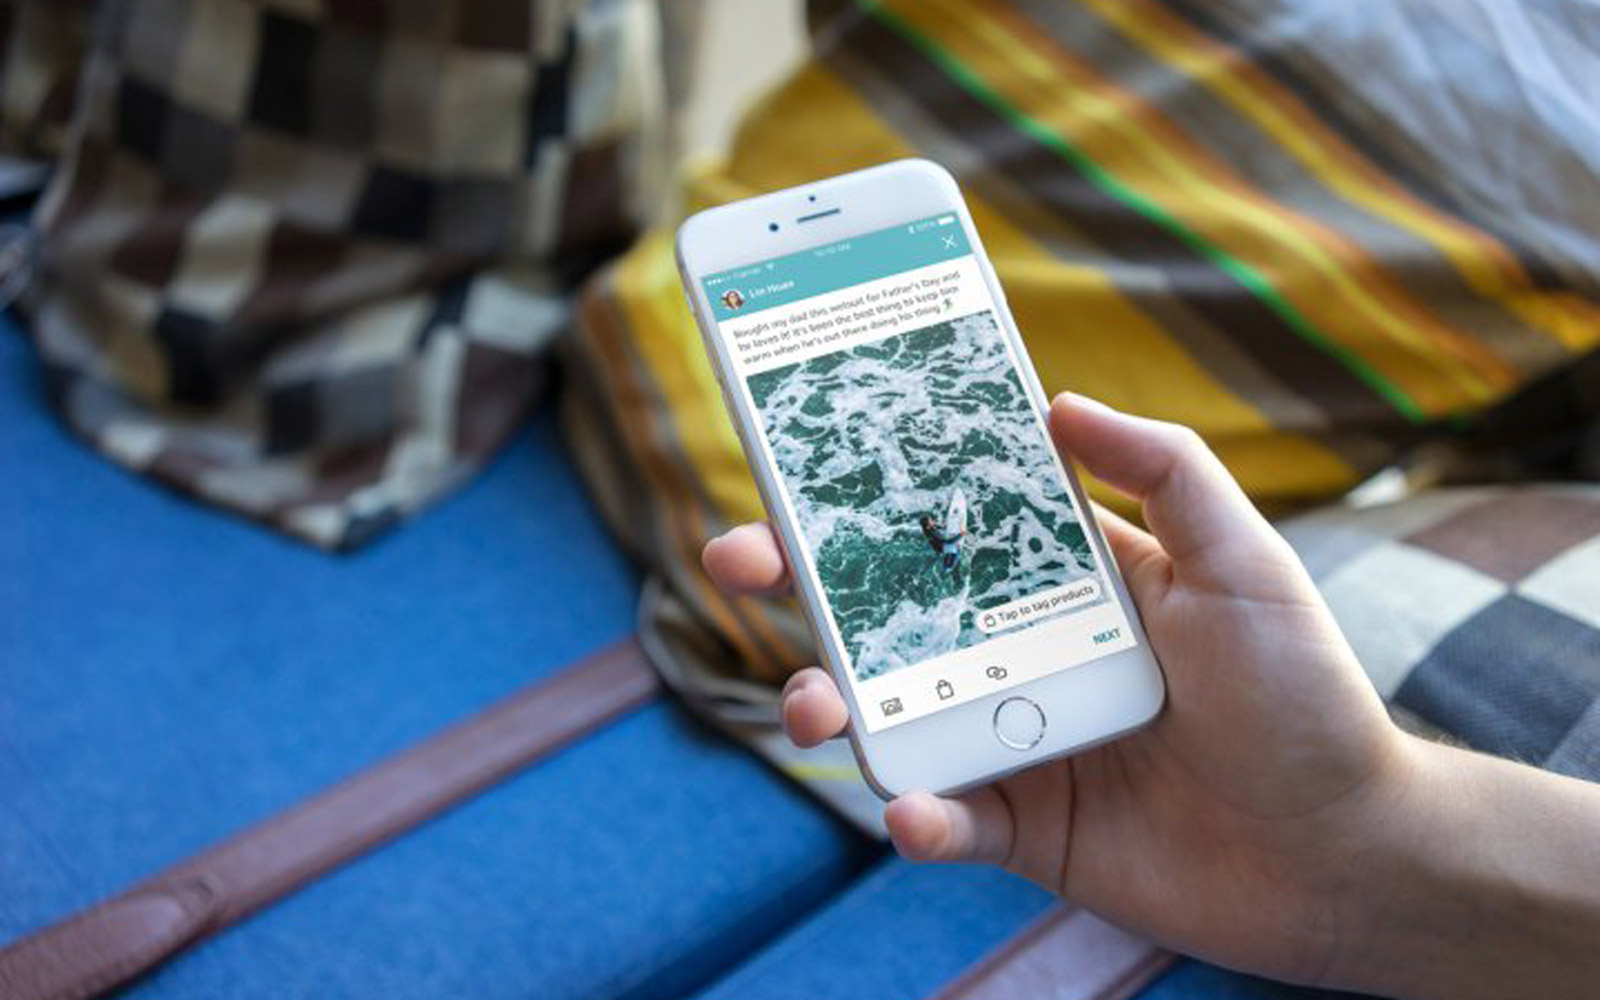 Amazon Spark Lets You Shop a Curated Feed of Stories and Images